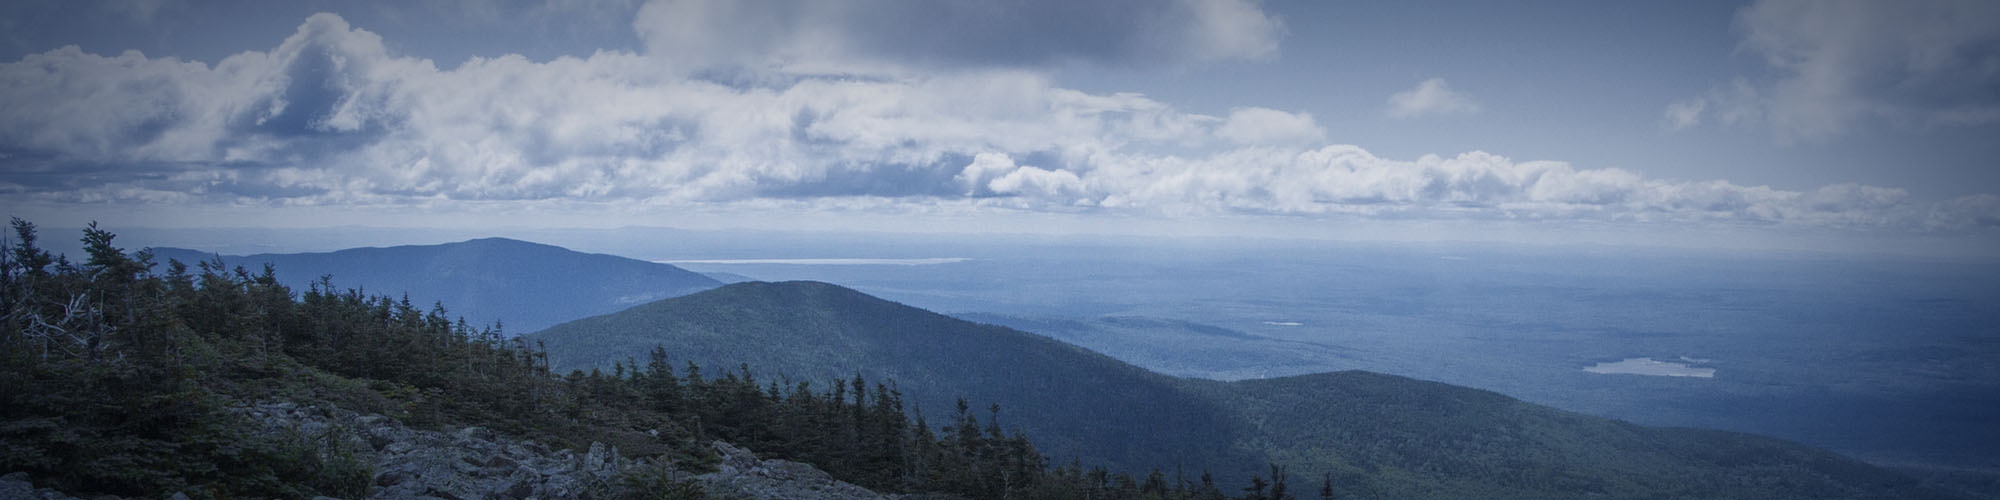 Whitecap Mountain, Maine